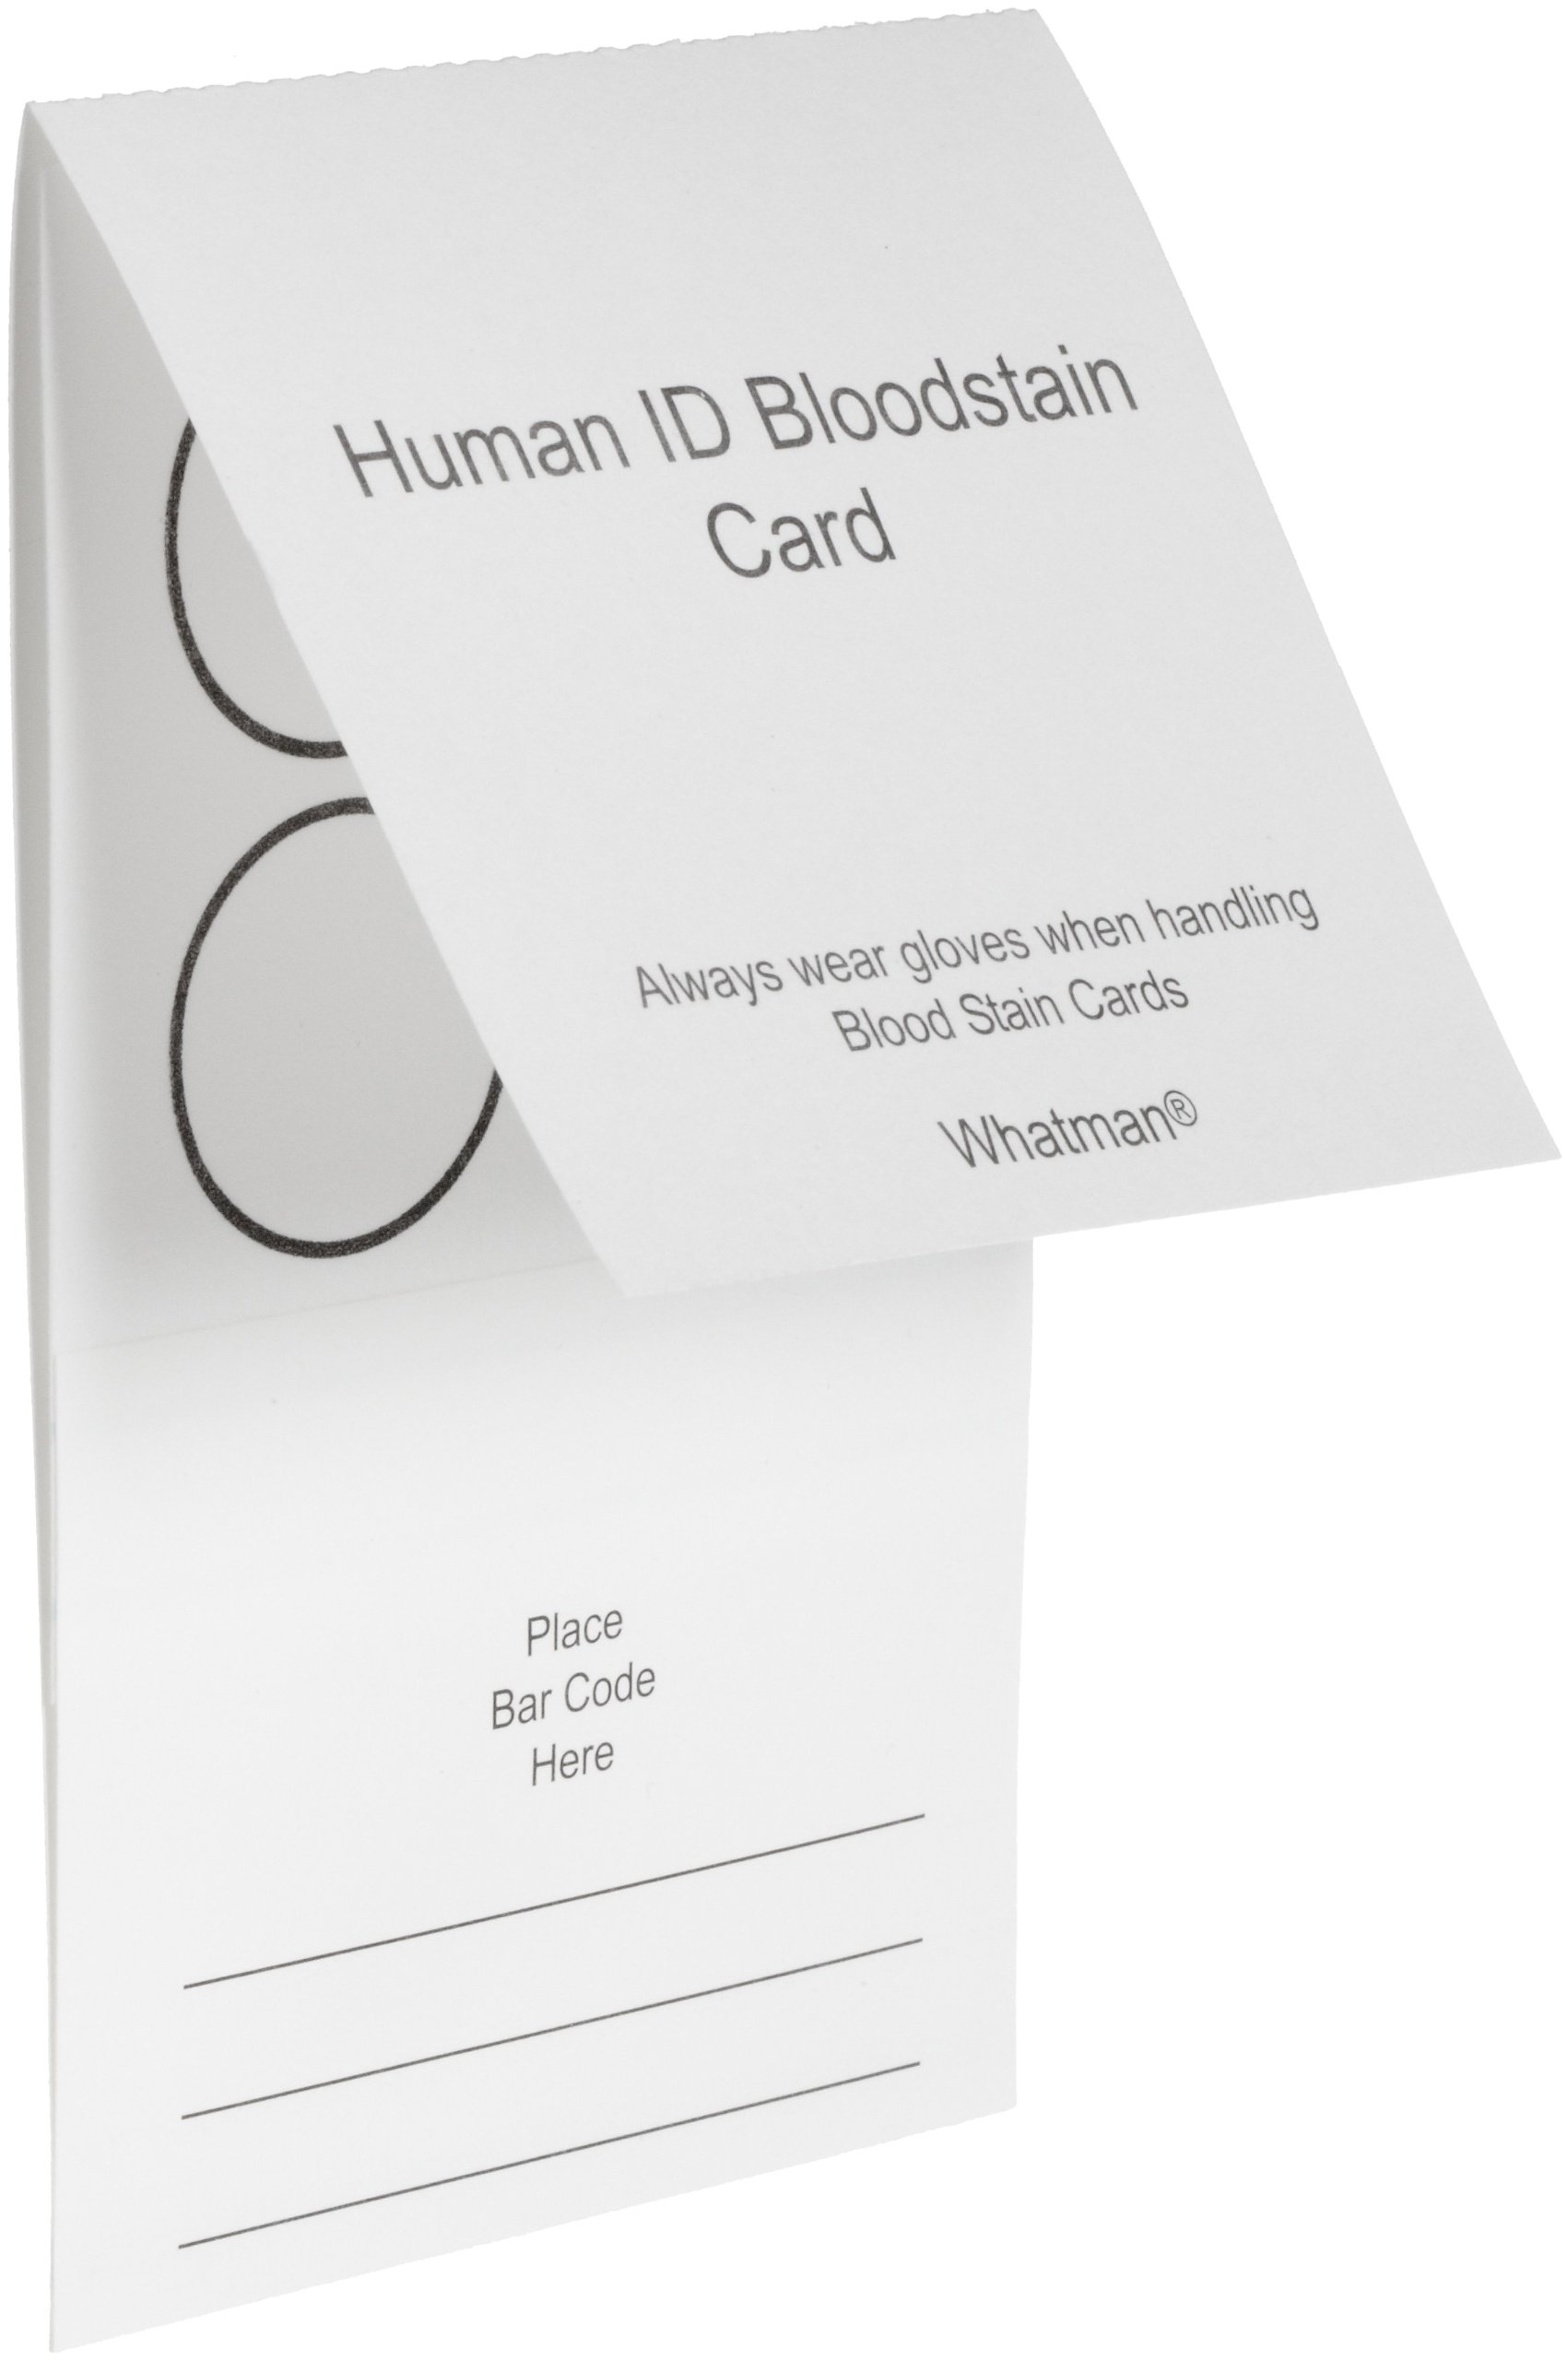 Whatman WB100014 Bloodstain Card (Pack of 100)